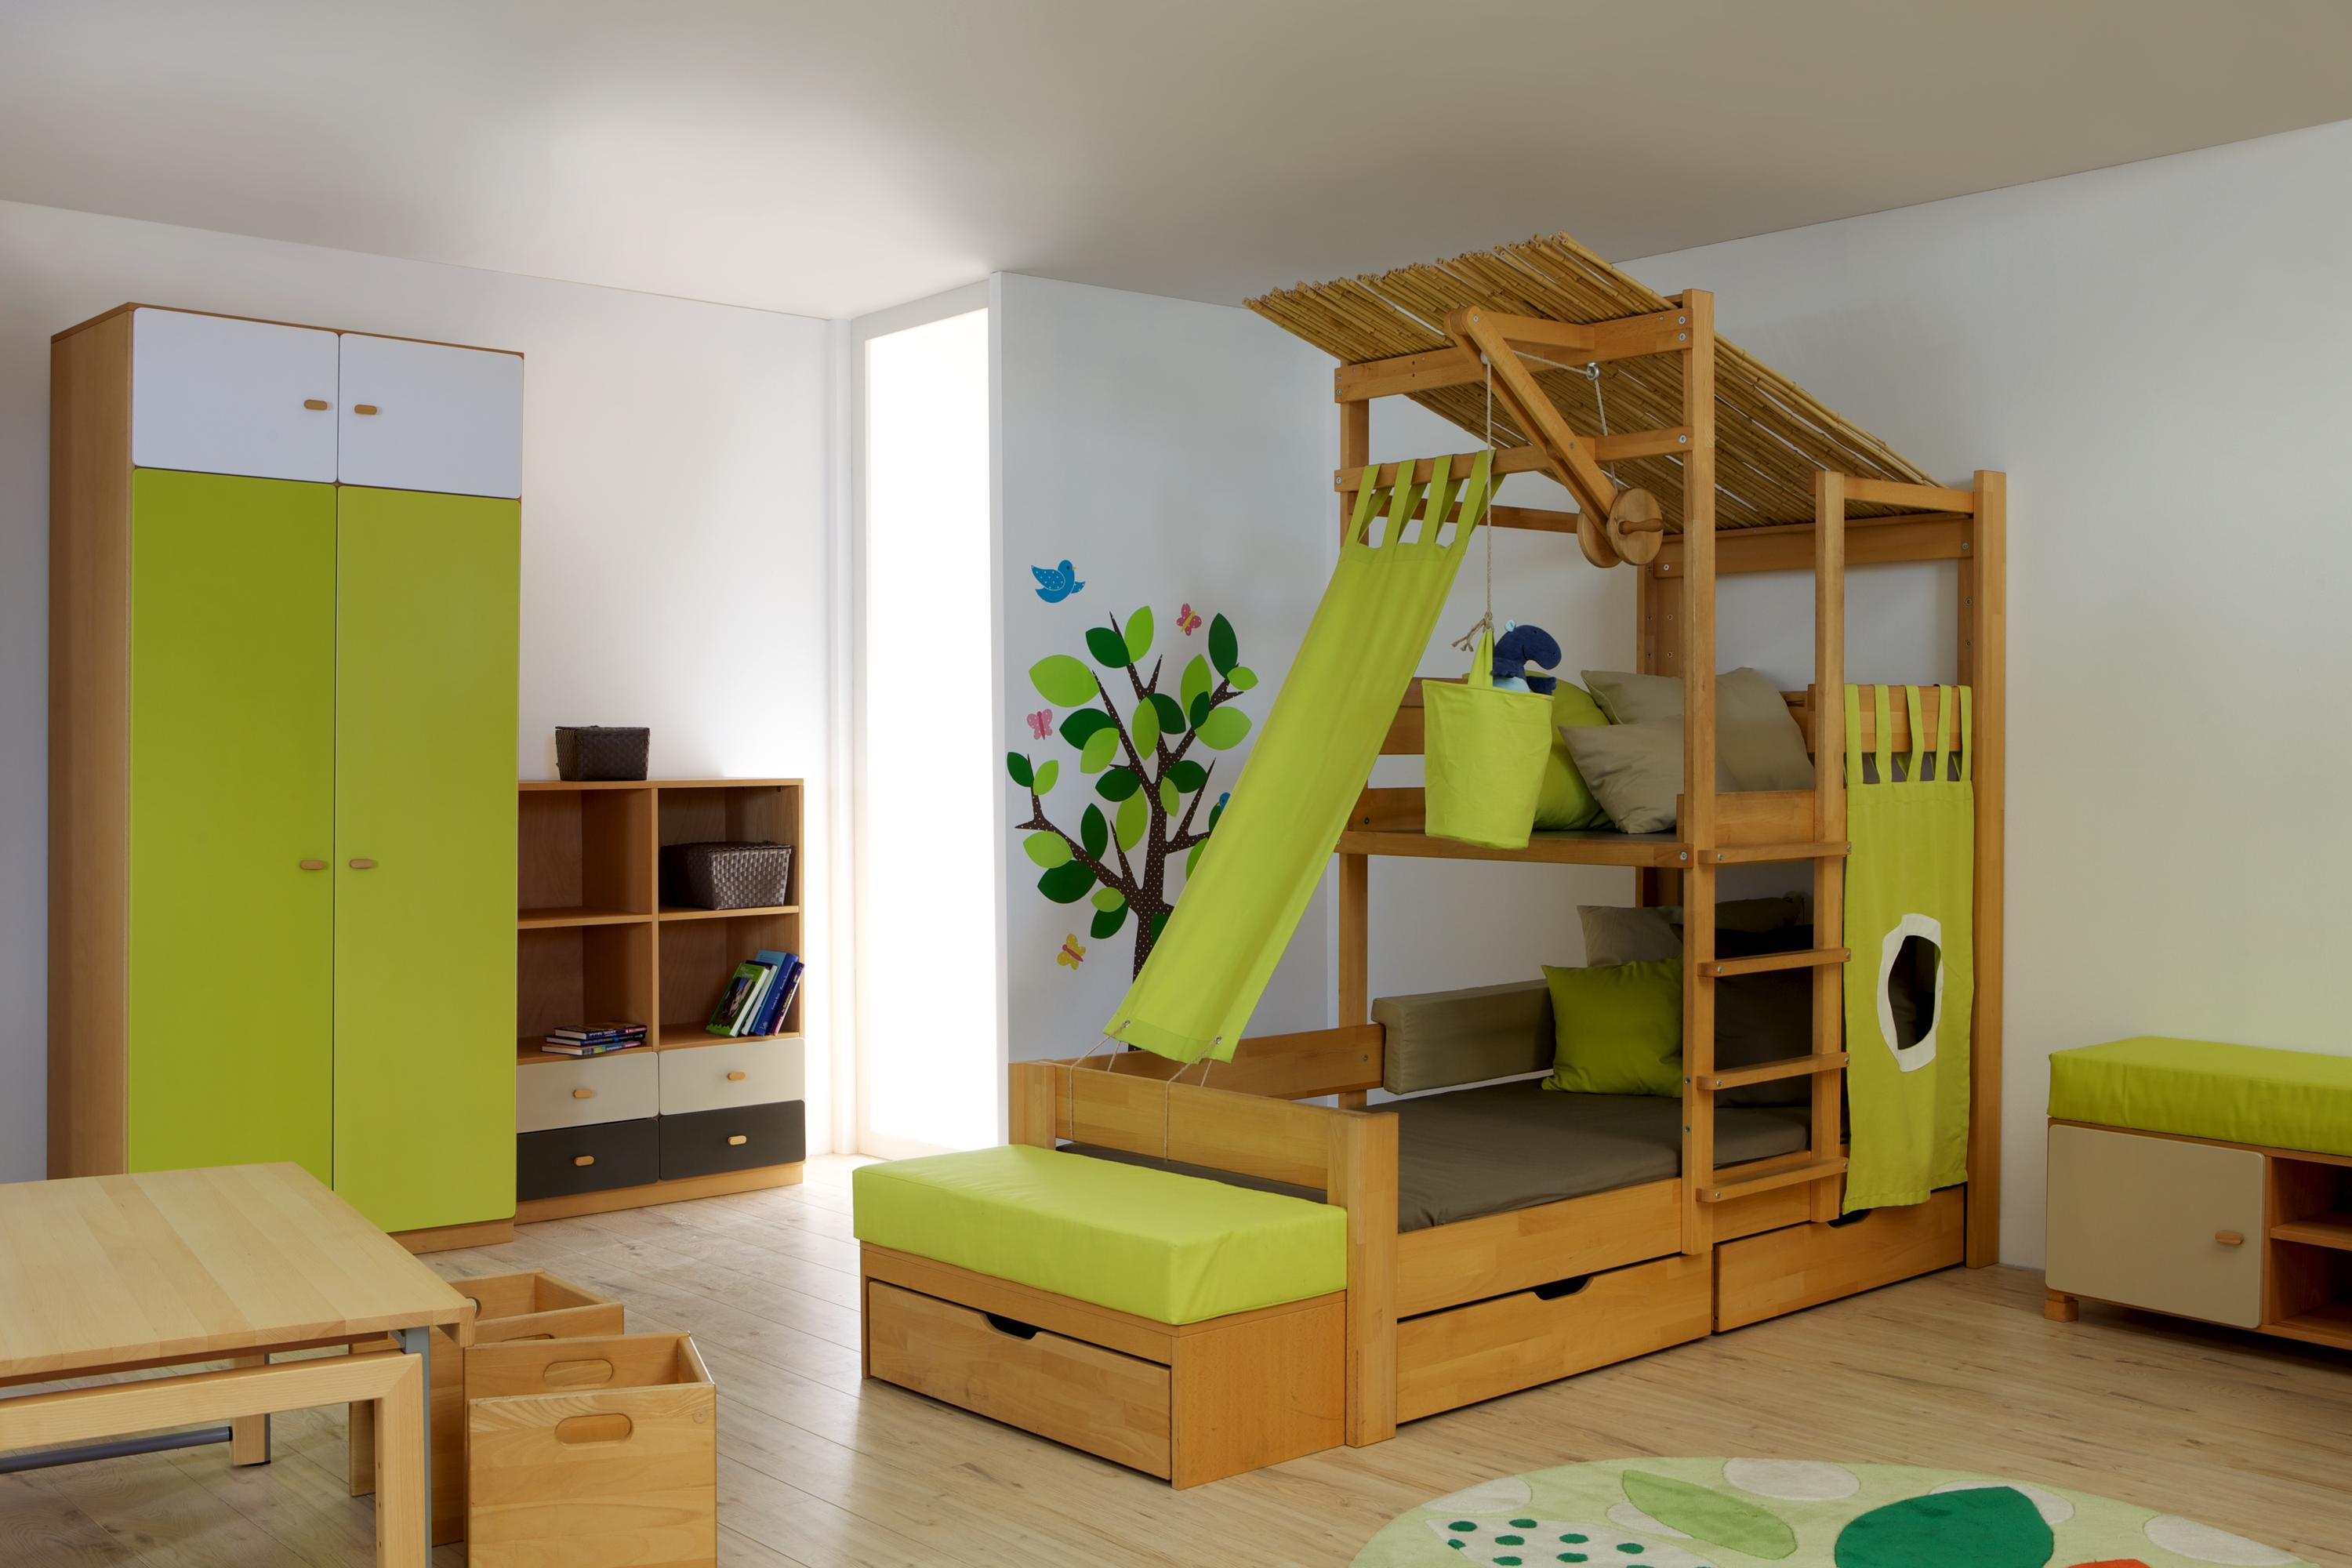 kinderbett ab 2 kinderbett ab jahren husliche kojenbett prinzessin bett lotta als kinderbett. Black Bedroom Furniture Sets. Home Design Ideas